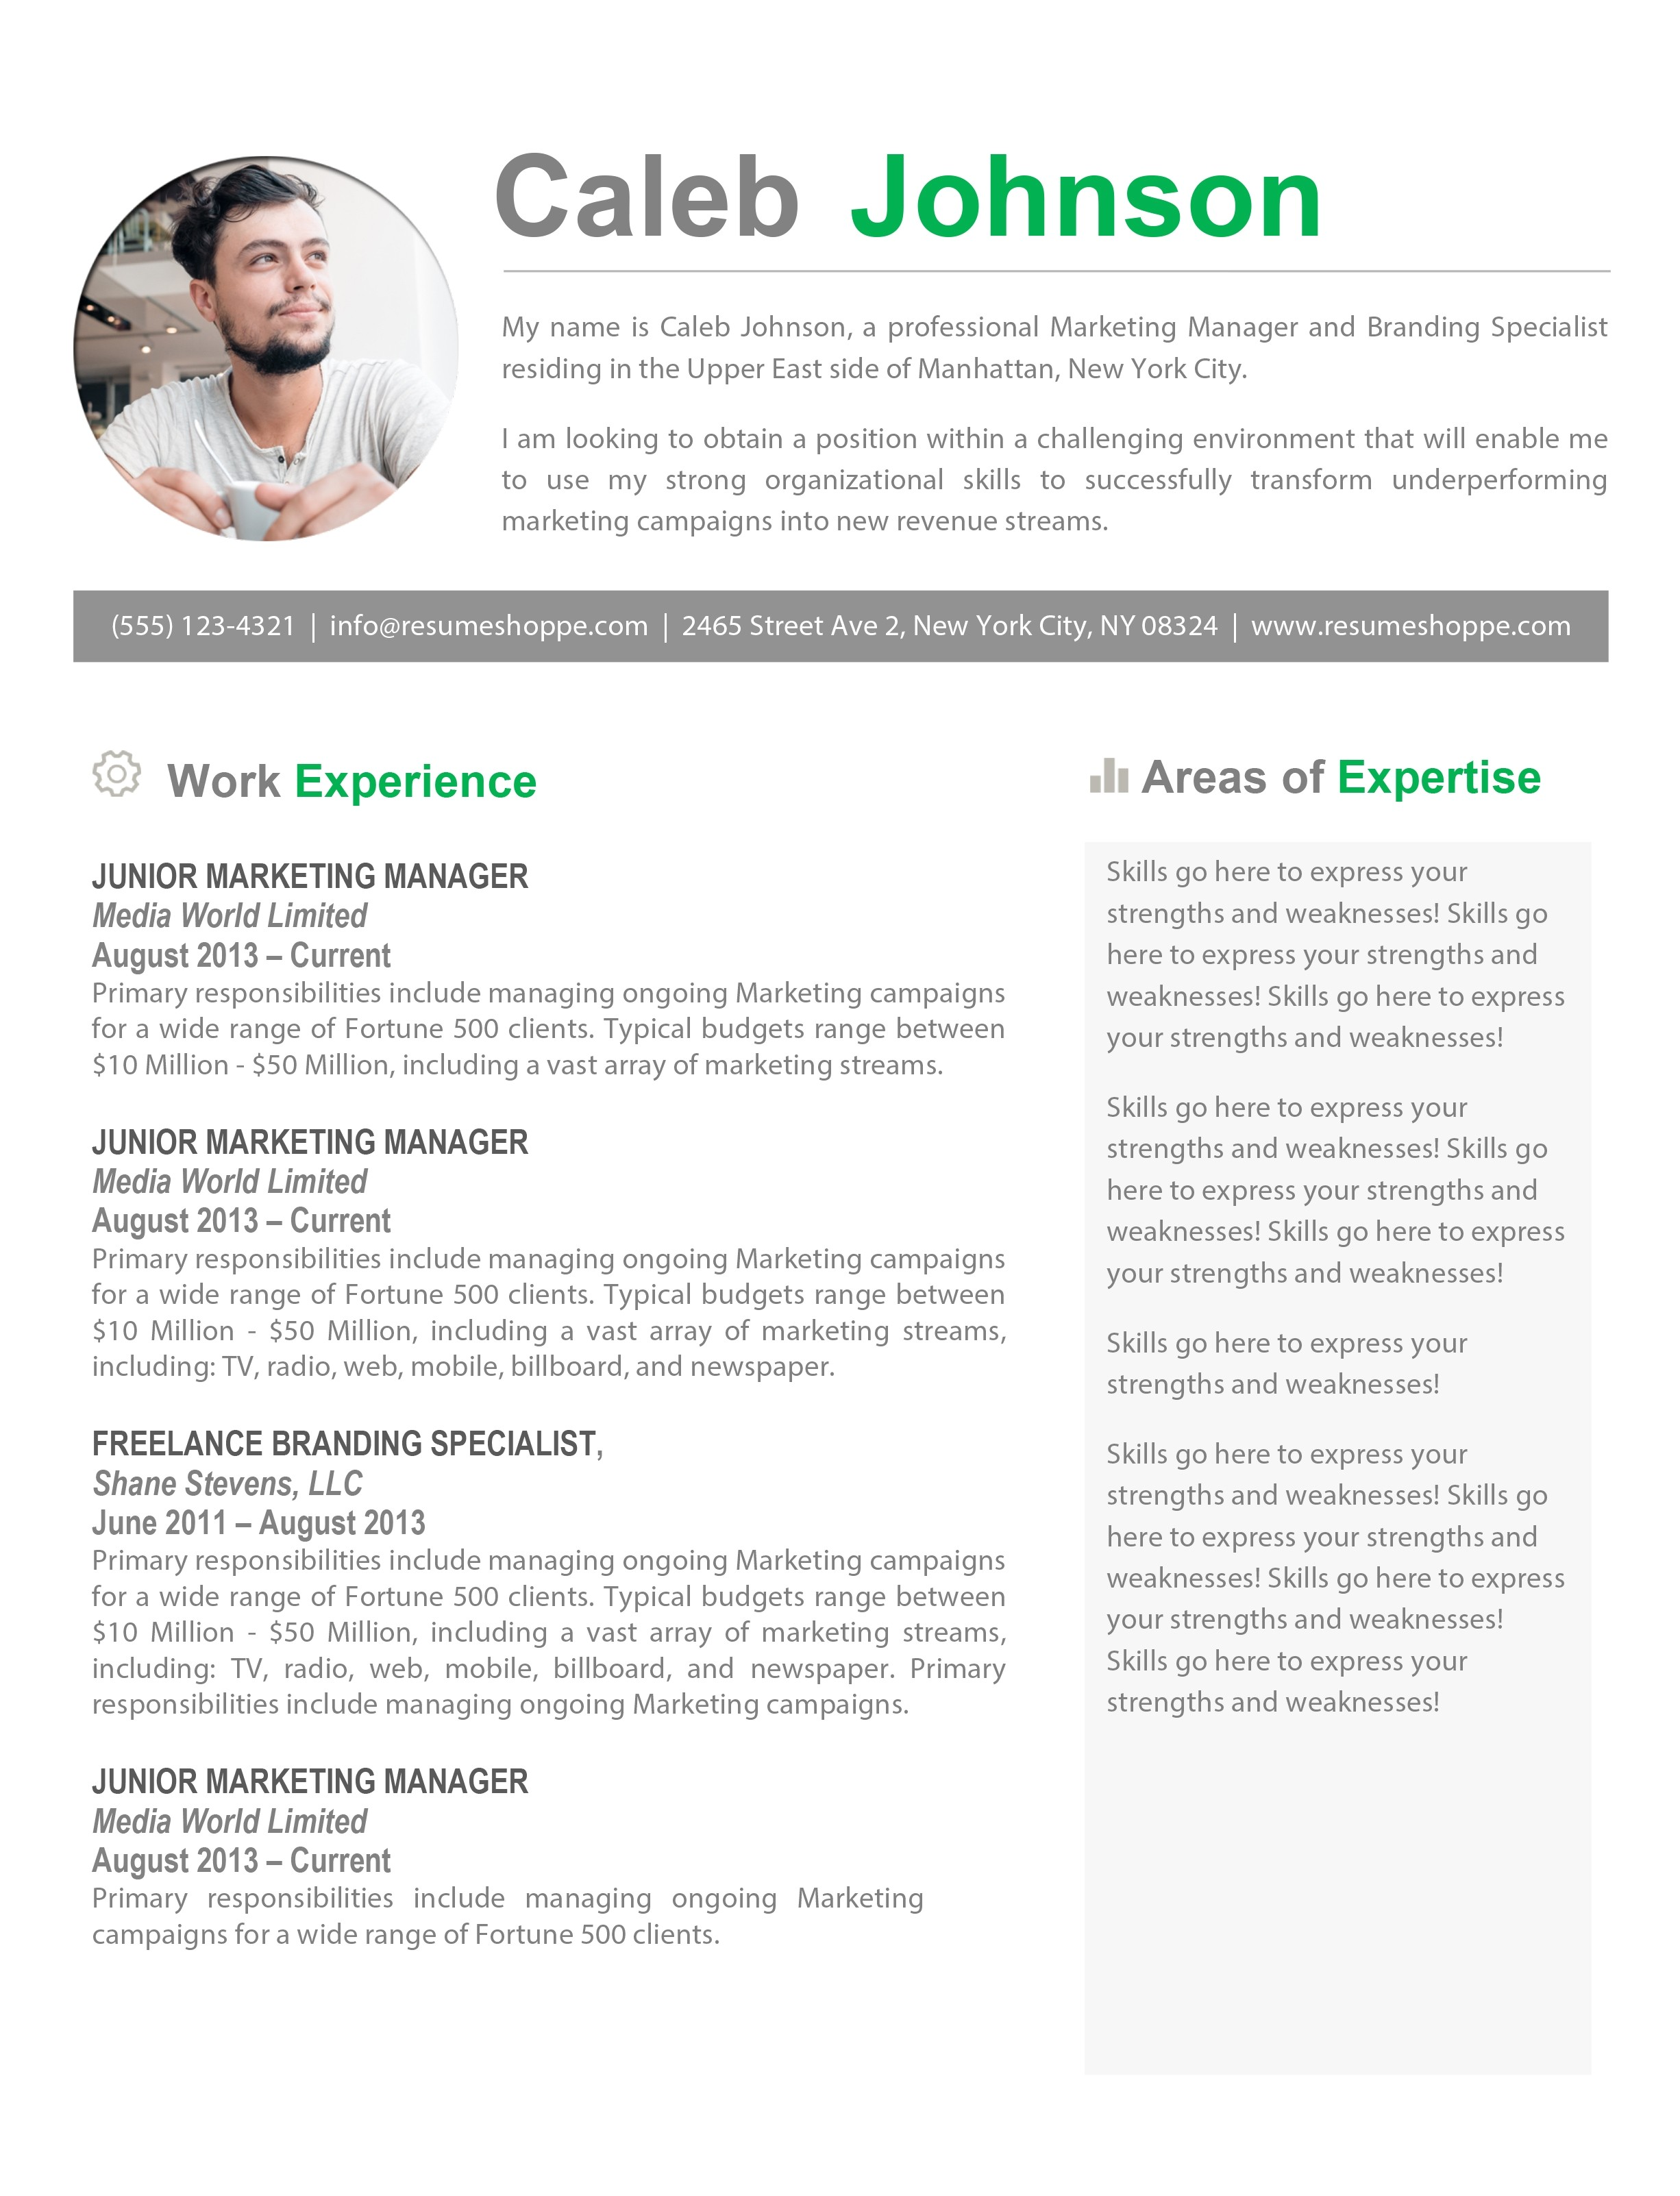 Free Resume Templates for Macbook Pro Free Resume Template for Macbook Pro